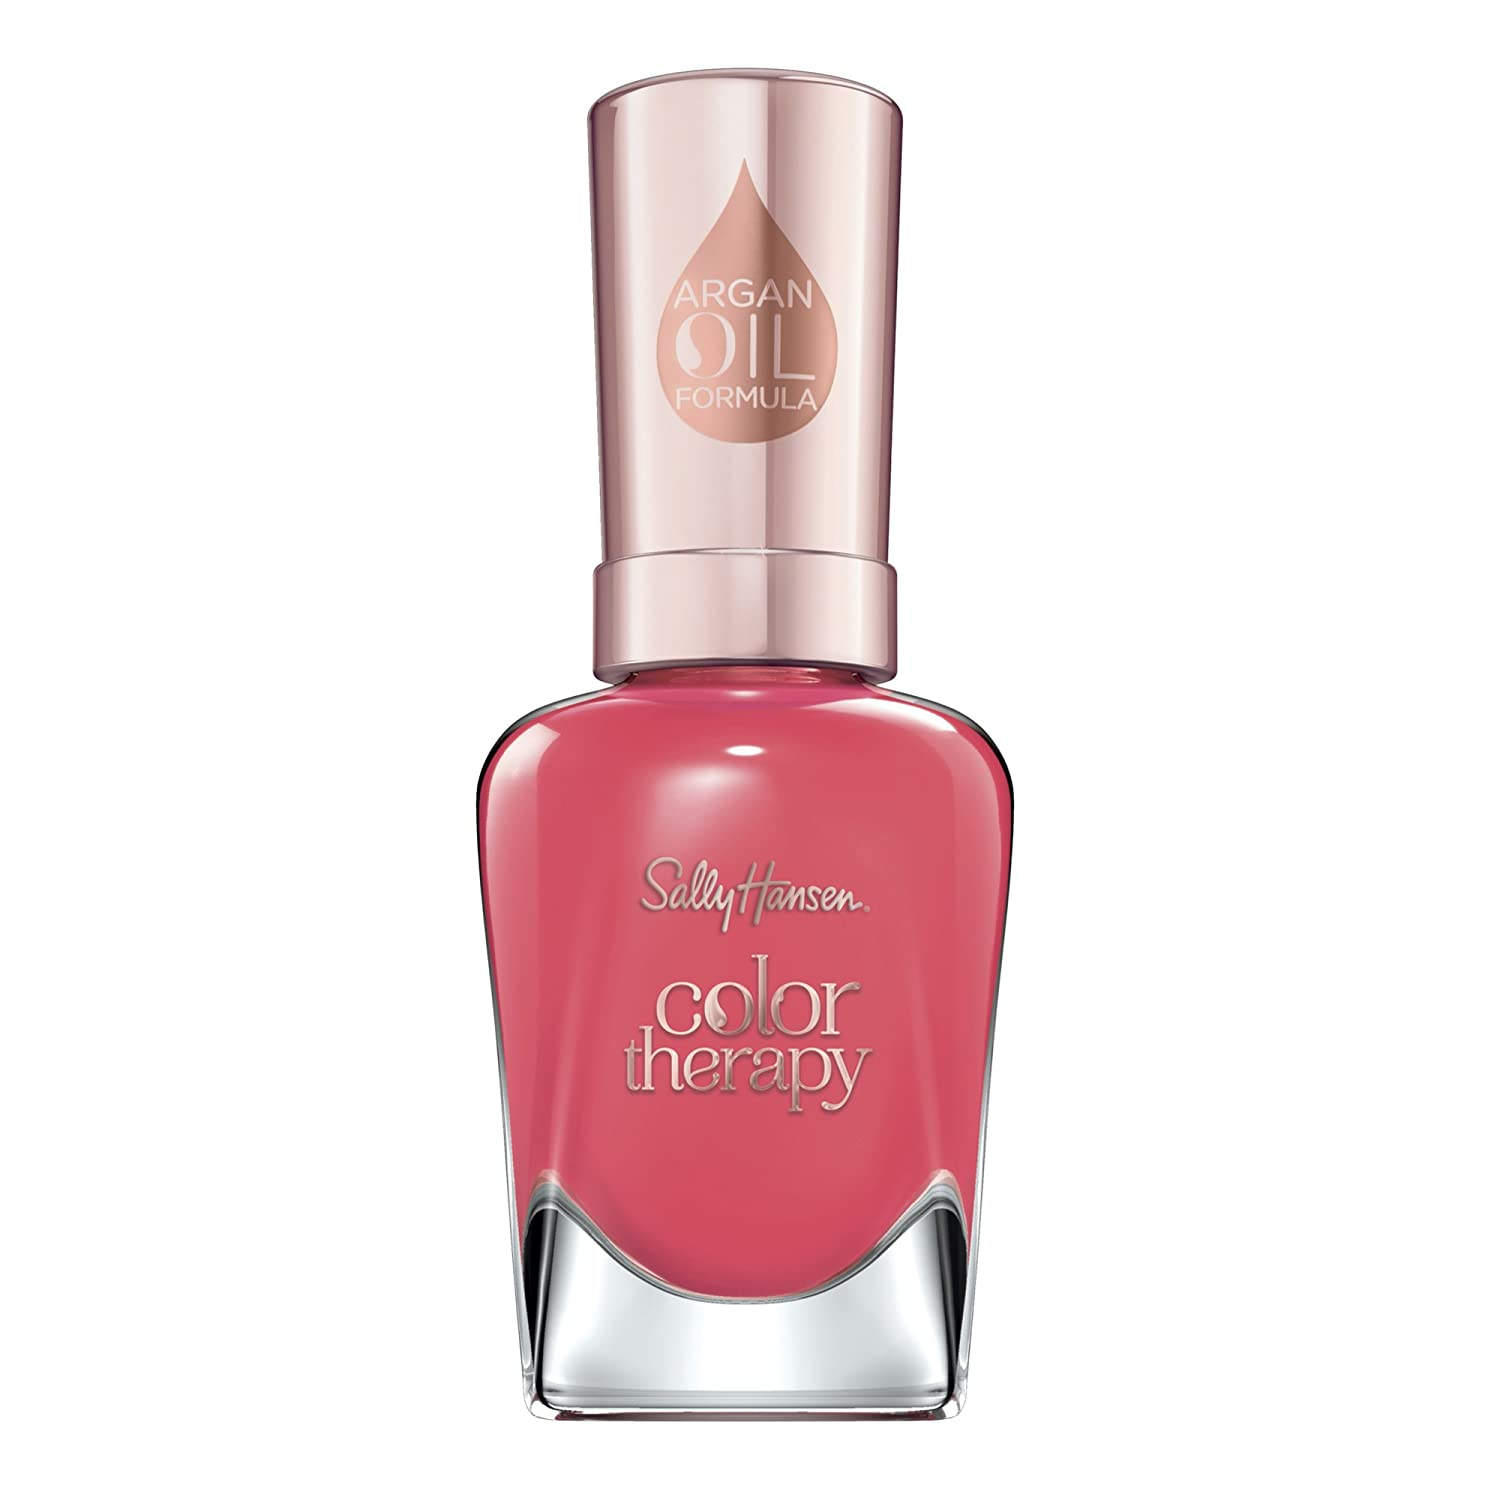 Sally Hansen Vernis à ongles Color Therapy couleur 360, Red Câble Y to Glow, 1pièce 30600066360